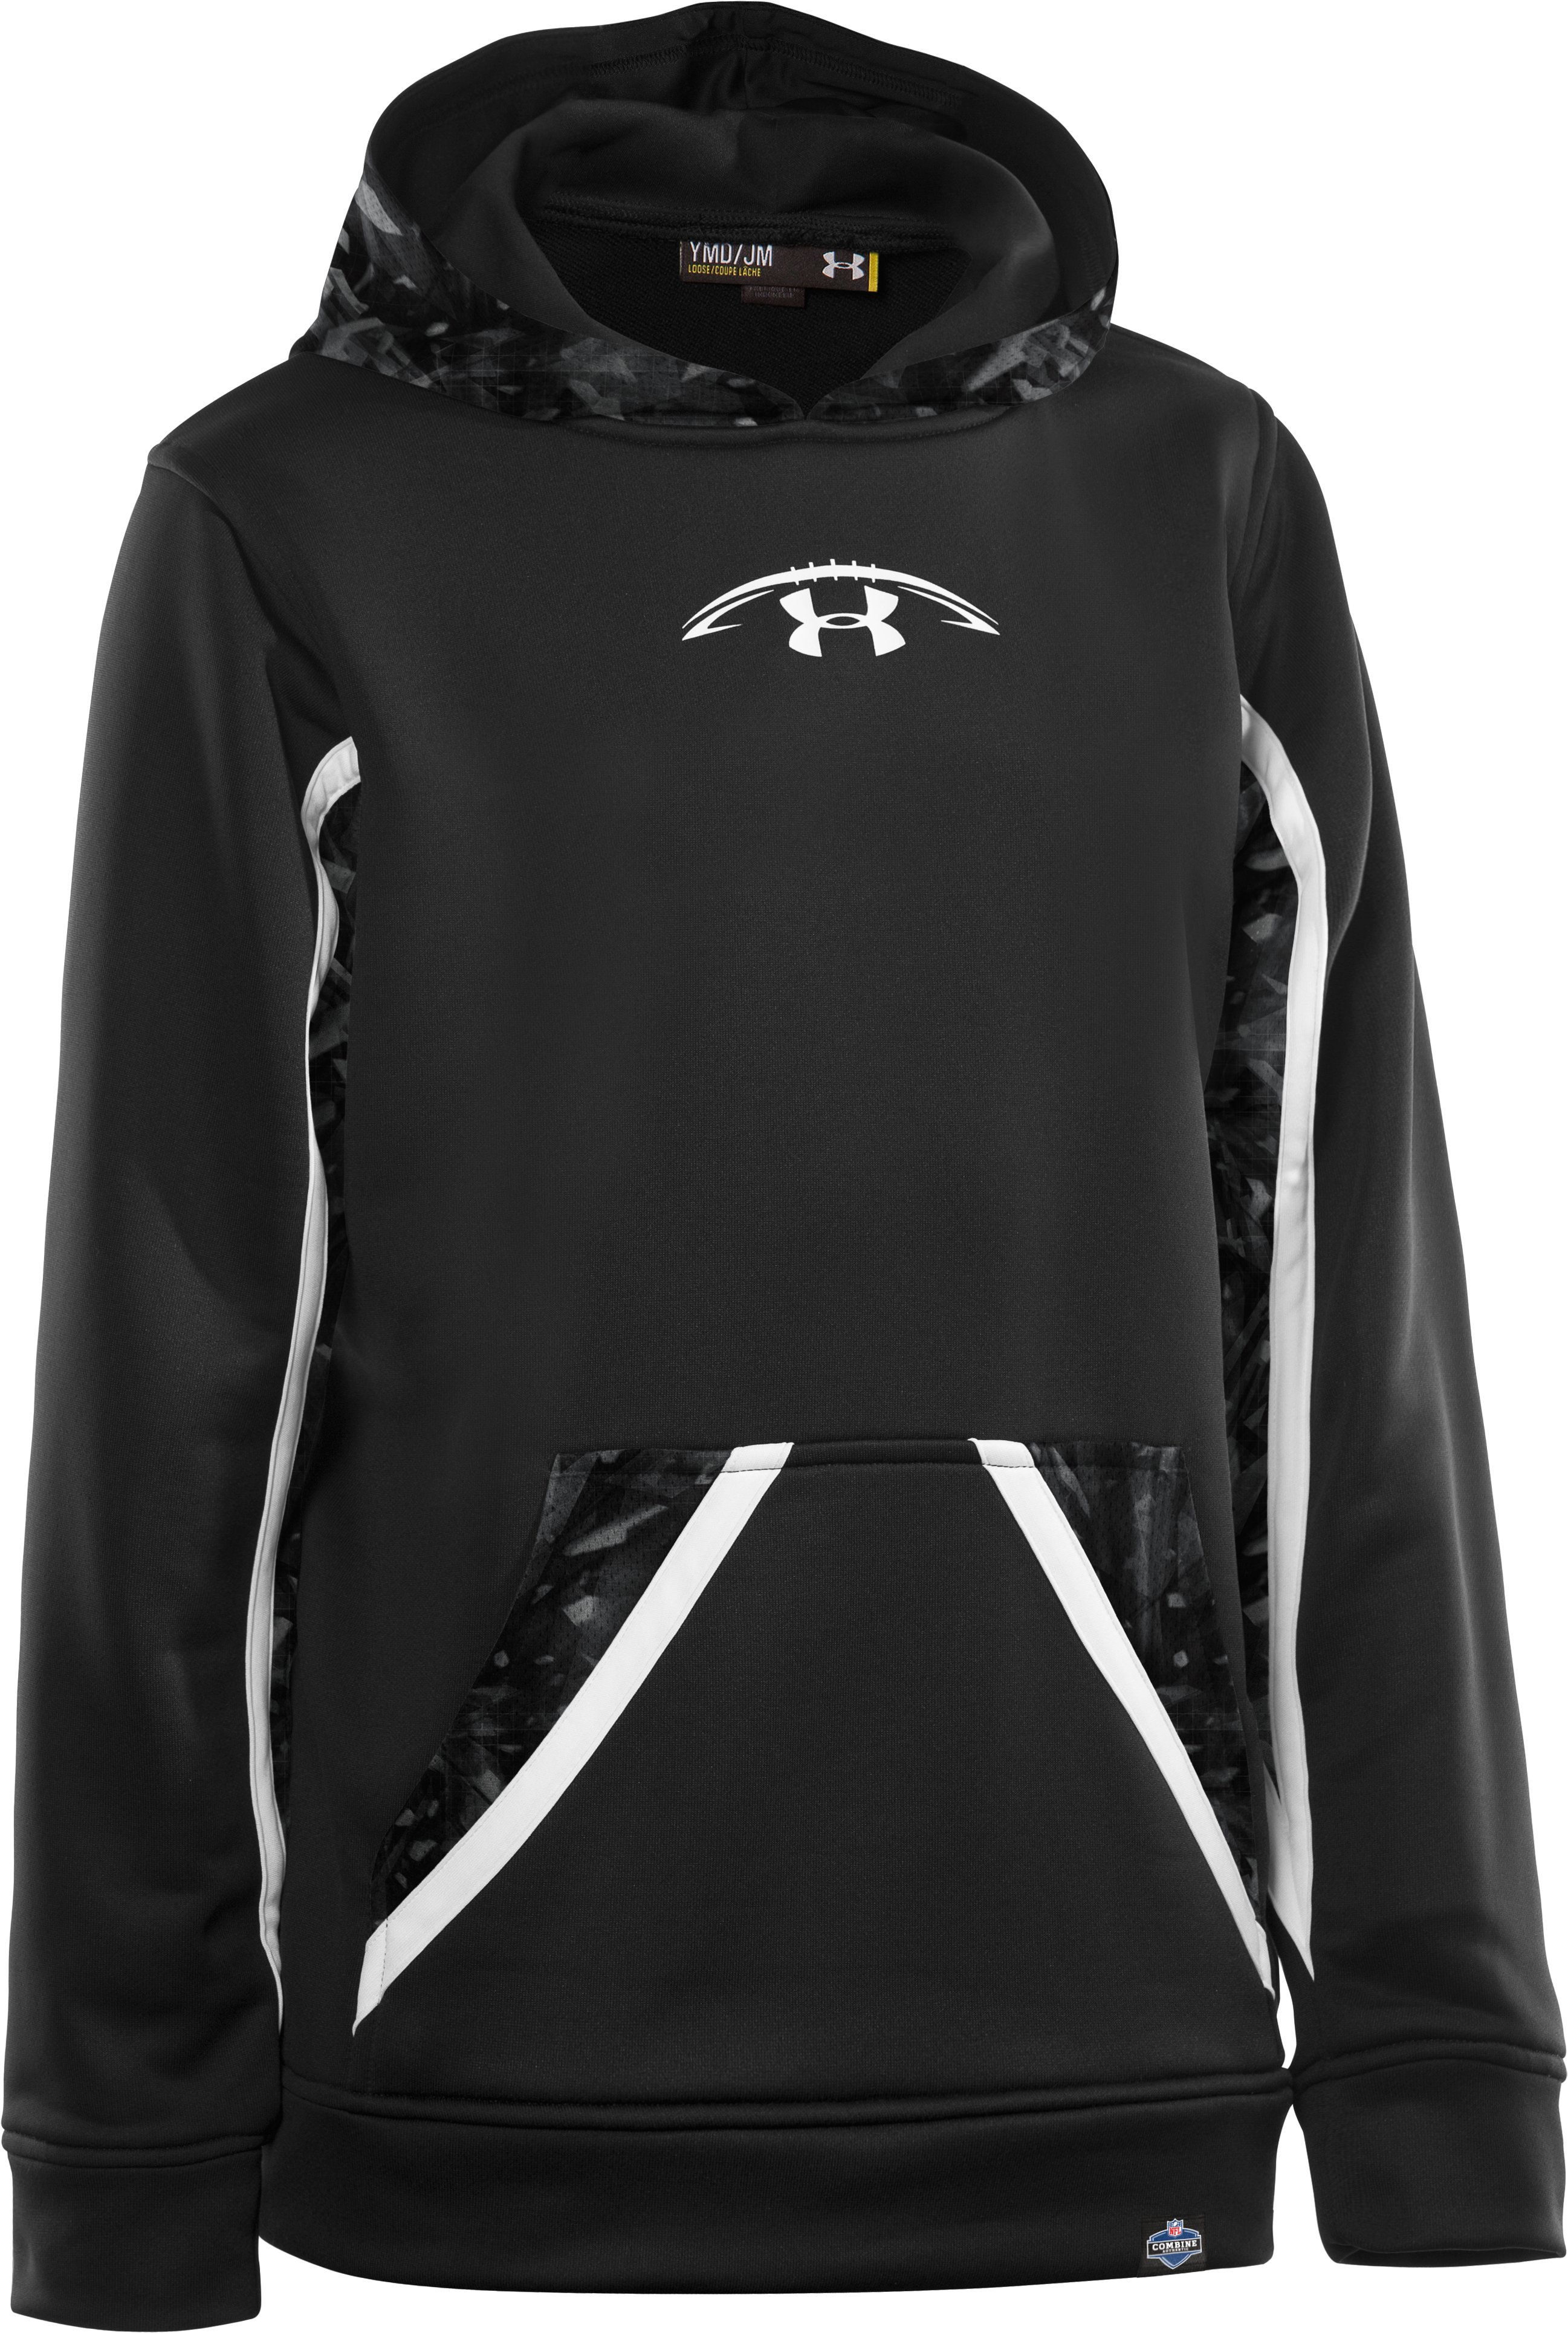 Boys' NFL Combine Authentic Hoodie, Black , zoomed image